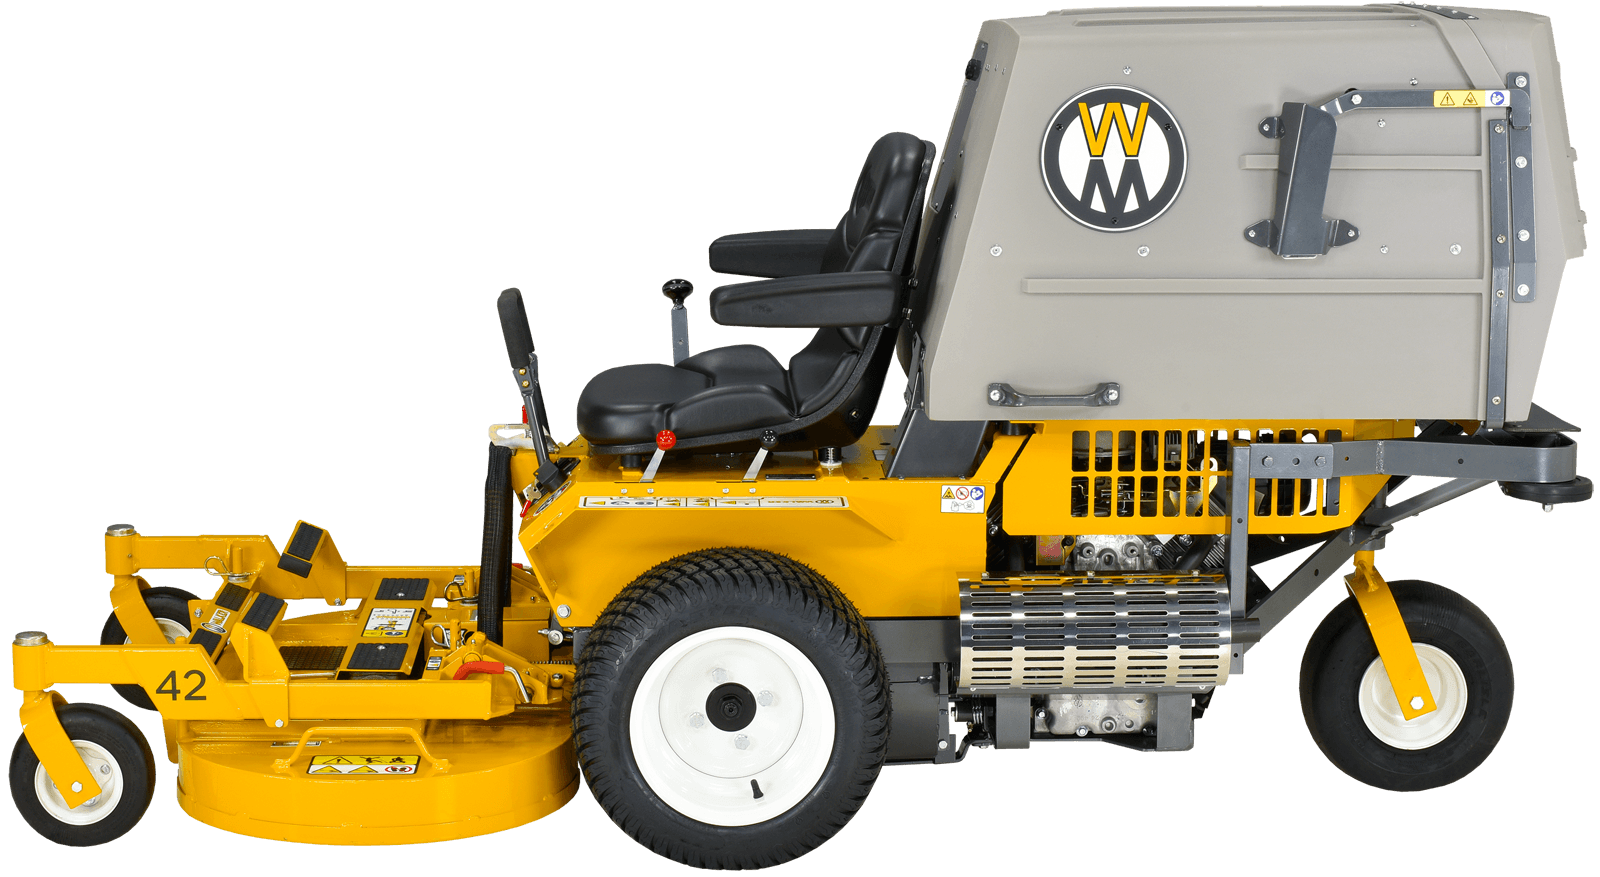 New 2016 Walker Mowers C19 Lawn Mowers in Port Angeles, WA